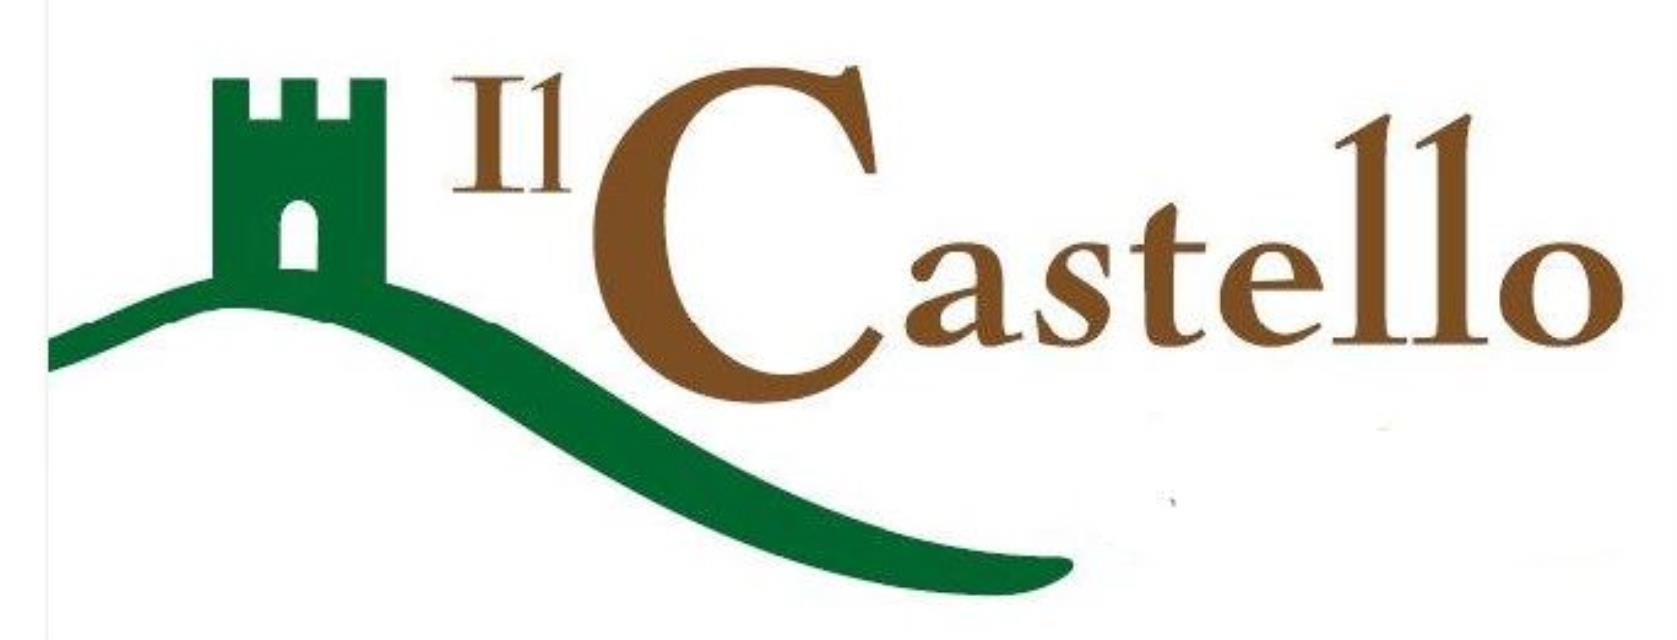 Marketed by Il Castello